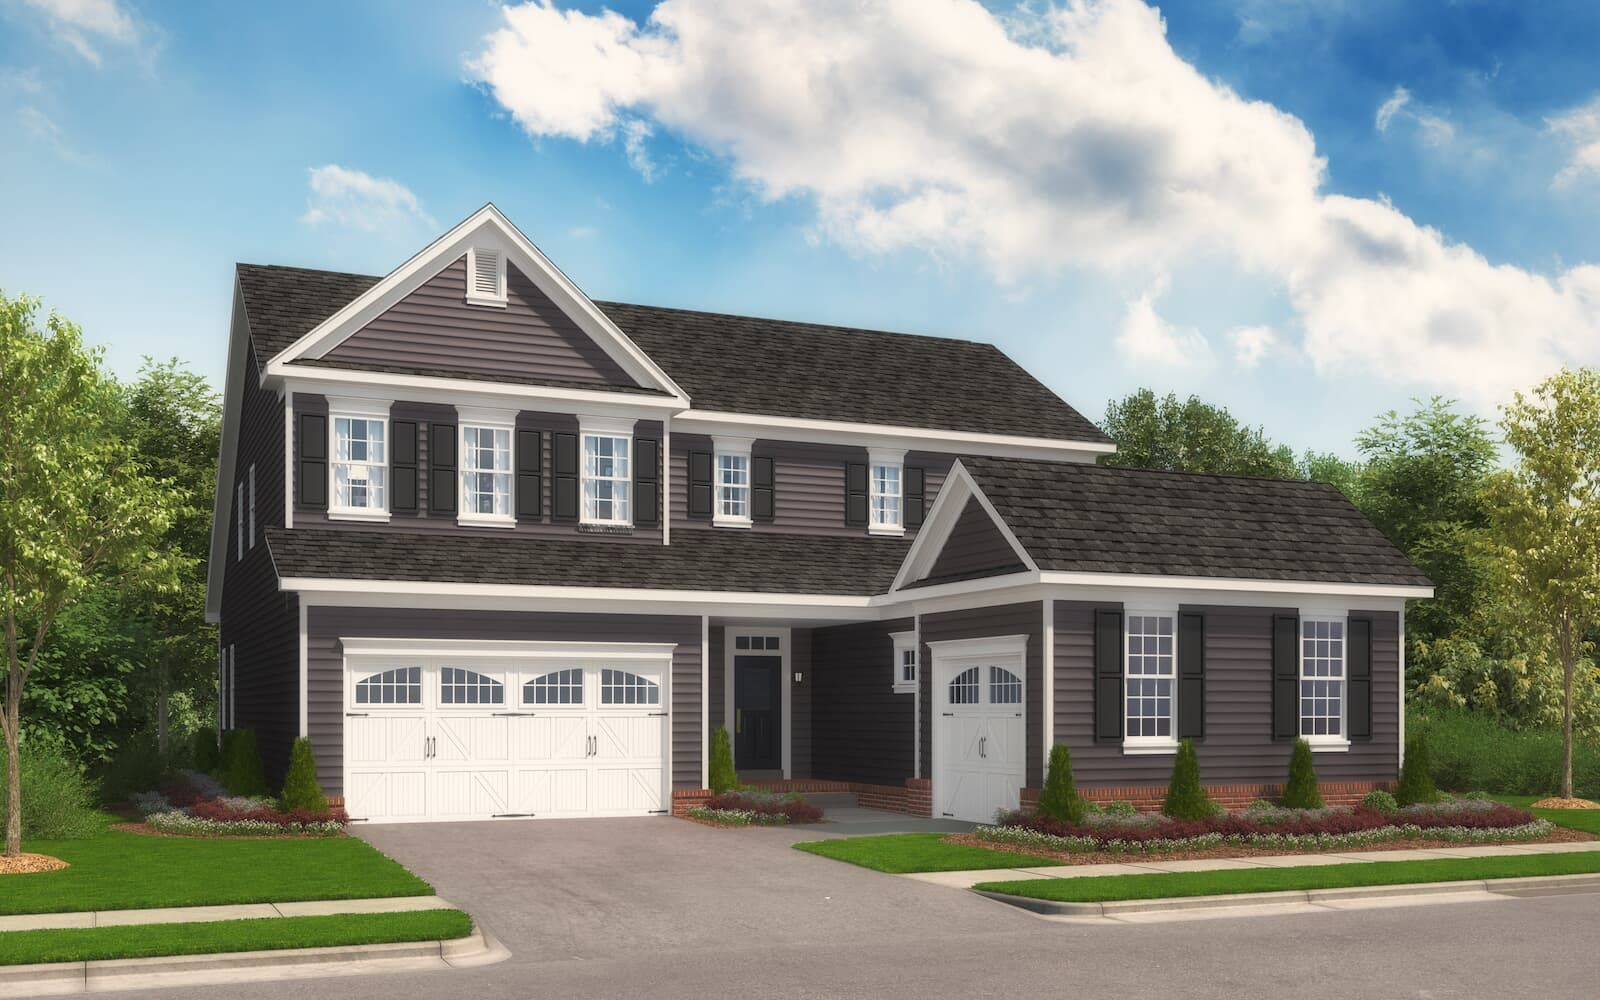 Exterior:Elevation 1 of the Weymouth a home design offered by Brookfield Residential at Two Rivers